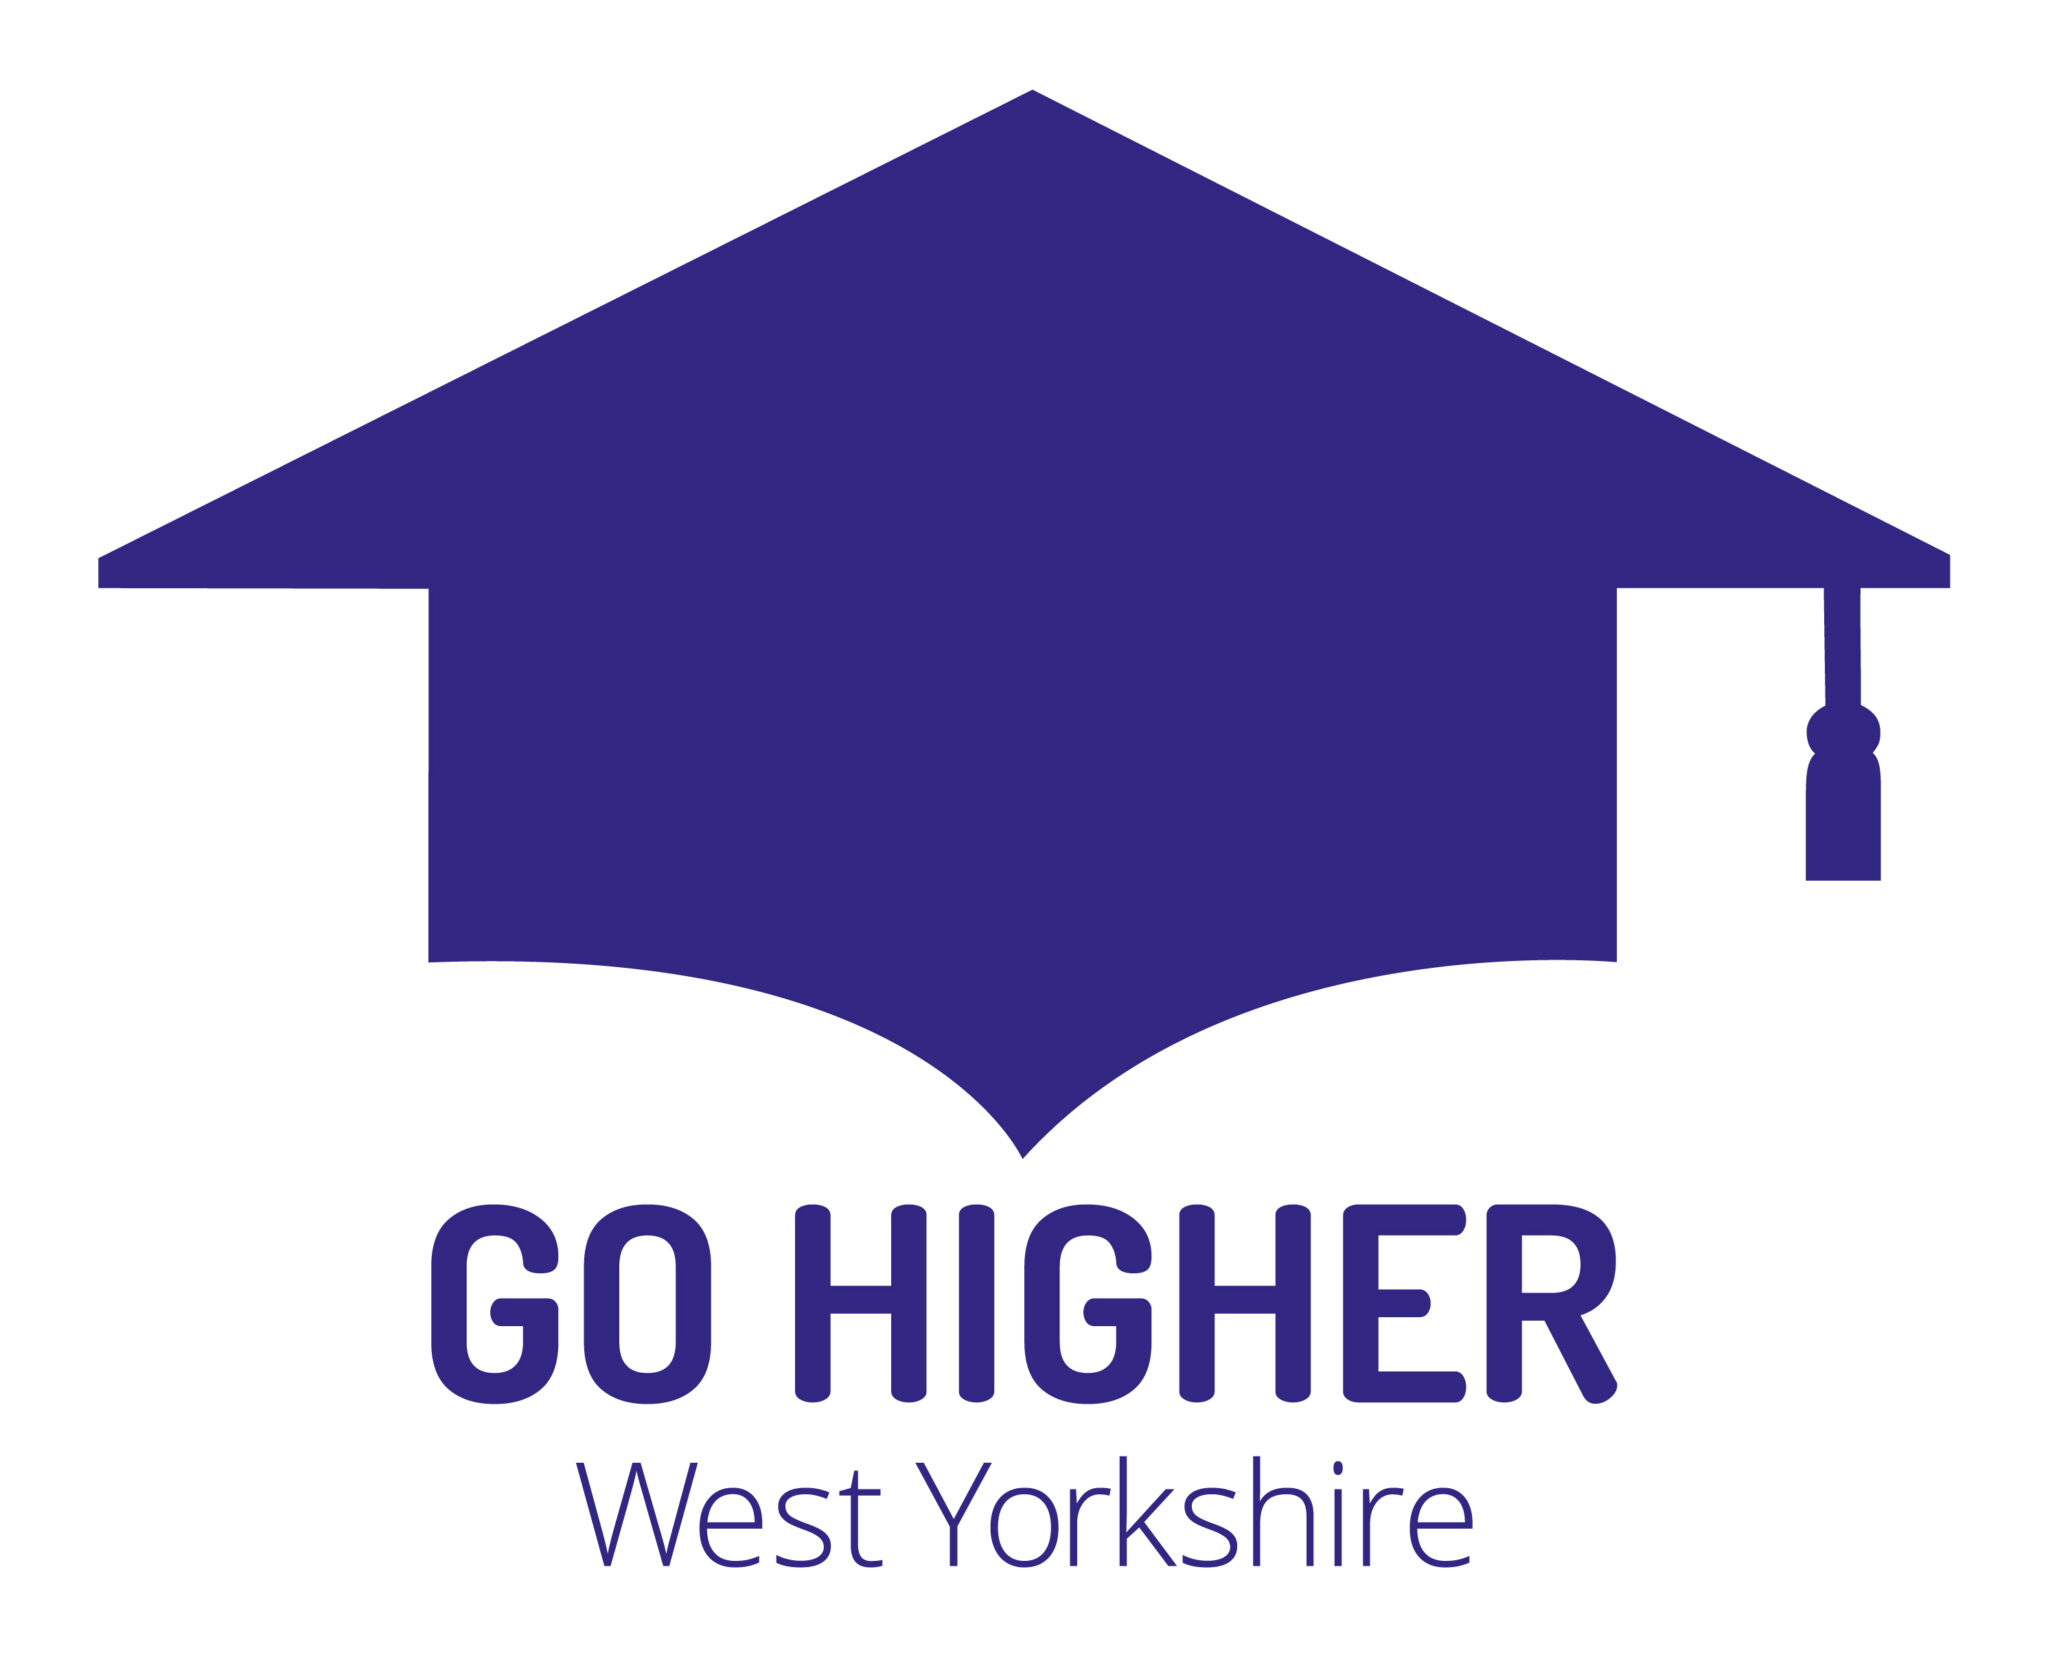 Go Higher West Yorkshire